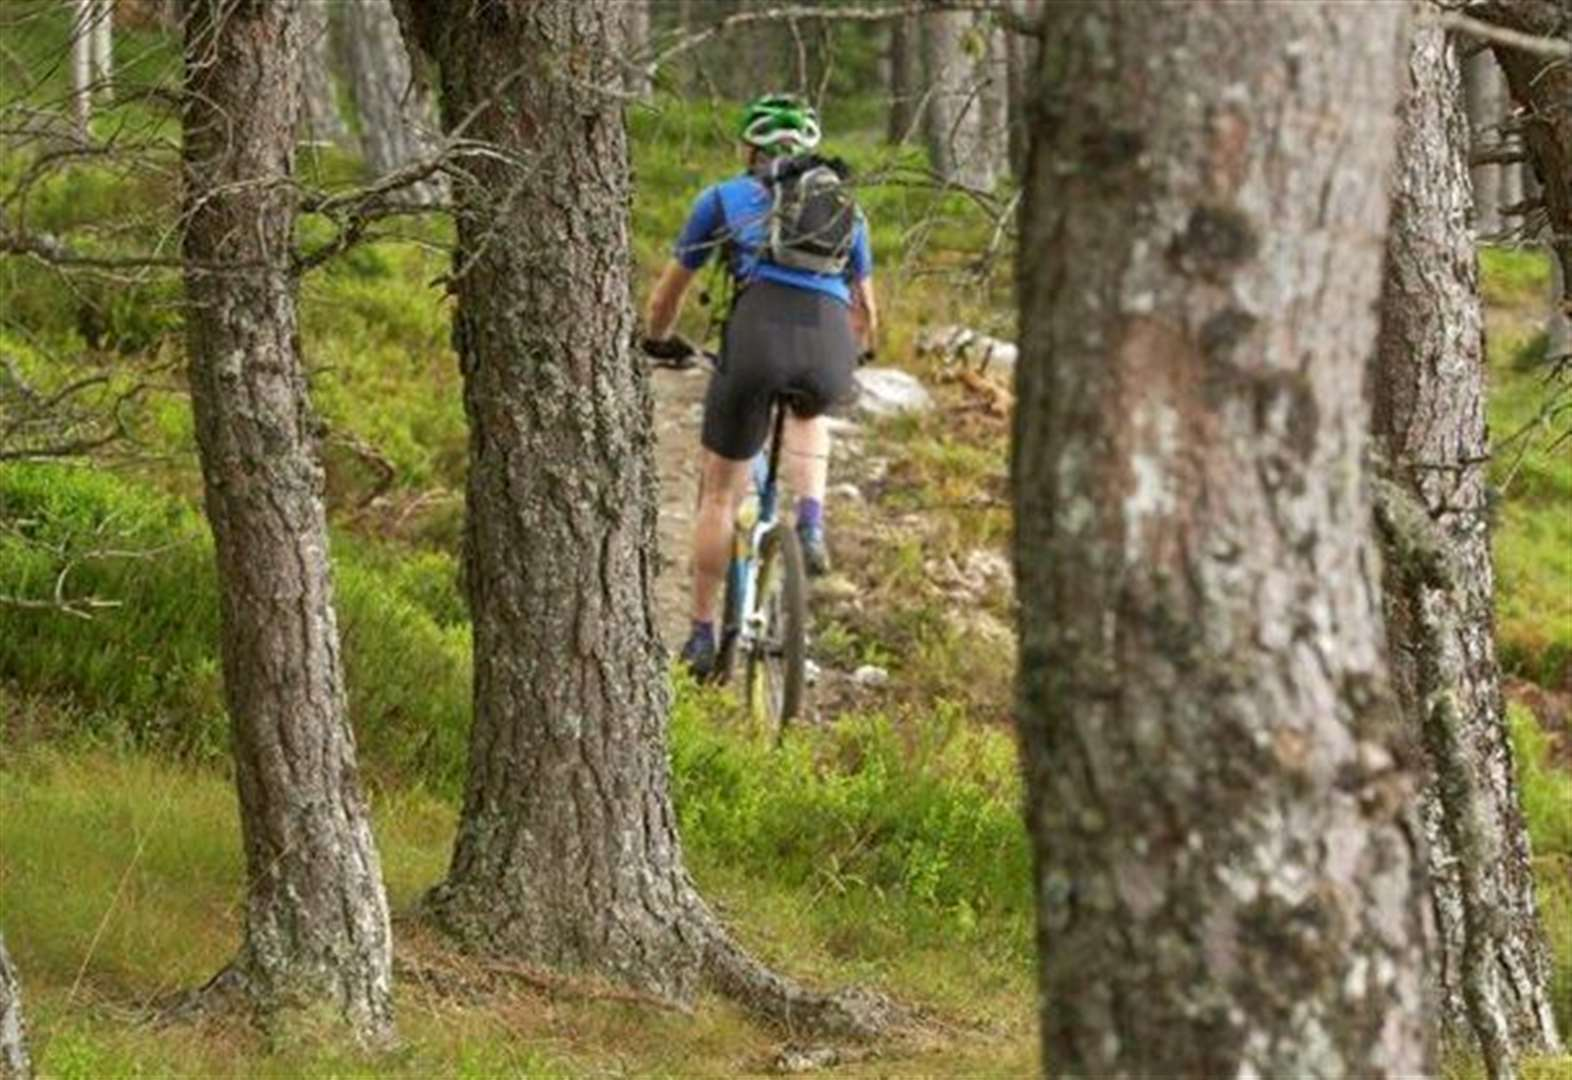 Forest car parks, toilets and bike trails closed